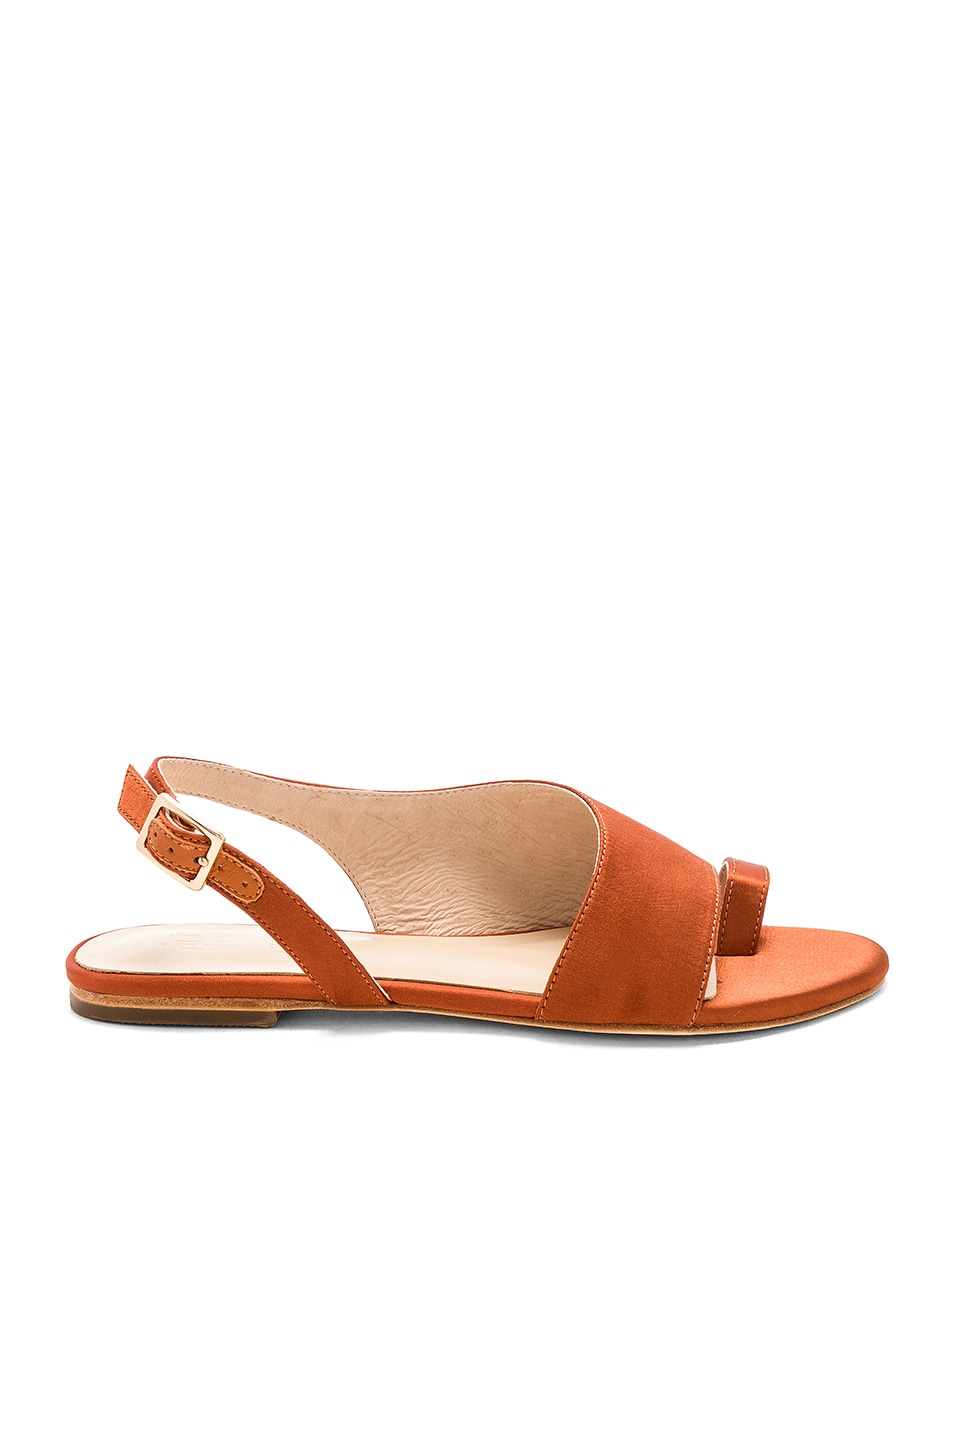 RAYE x House of Harlow 1960 Ophelia Sandal in Rust